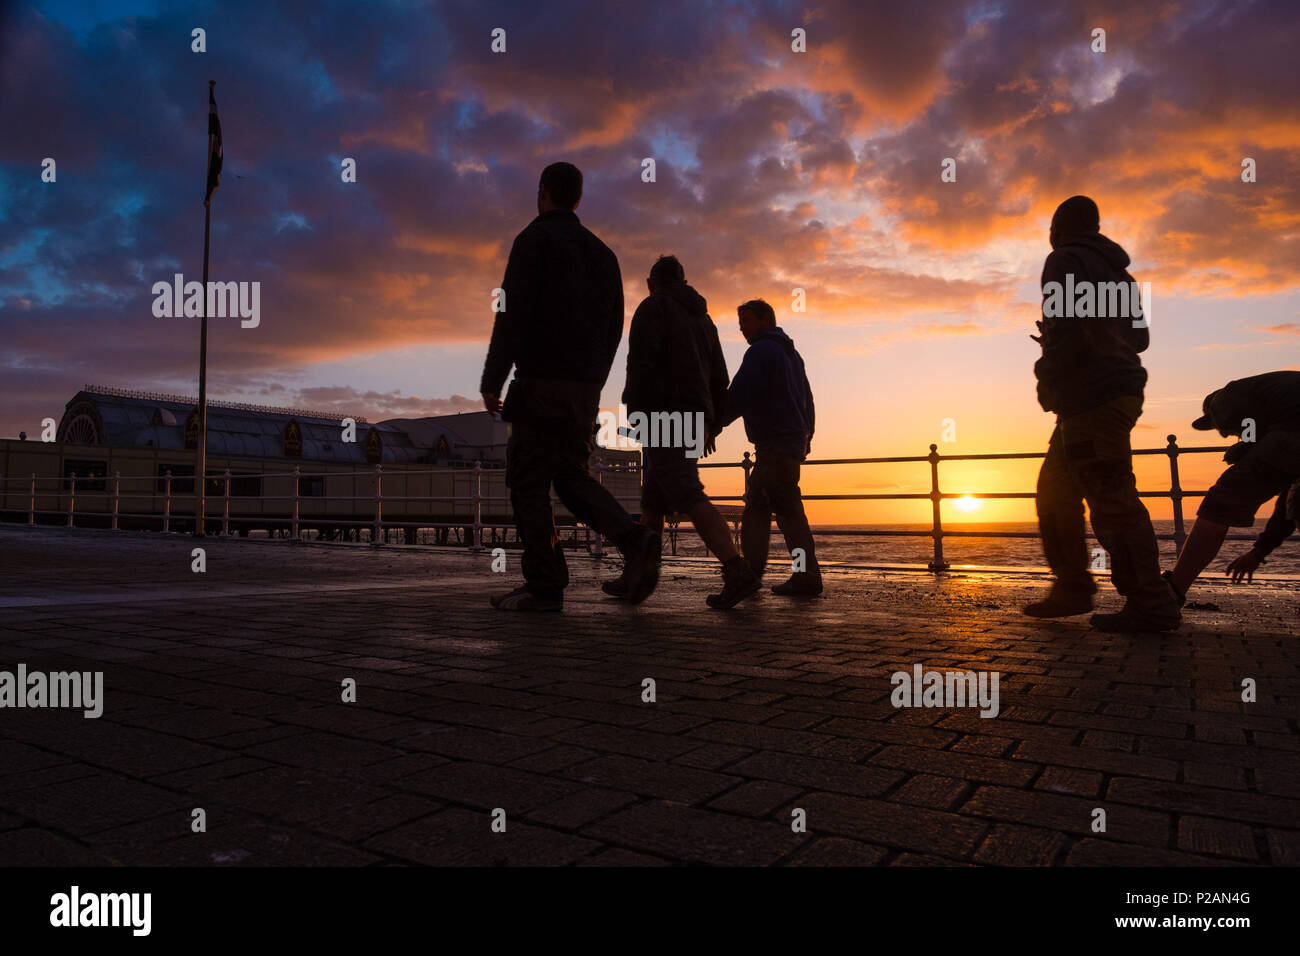 Aberystwyth, UK. 14th June 2018.   UK Weather: After Storm Hector has blown out, the day ends with a glorious summer evening and sunset in Aberystwyth on the west Wales coast  photo credit Keith Morris / Alamy Live News Stock Photo